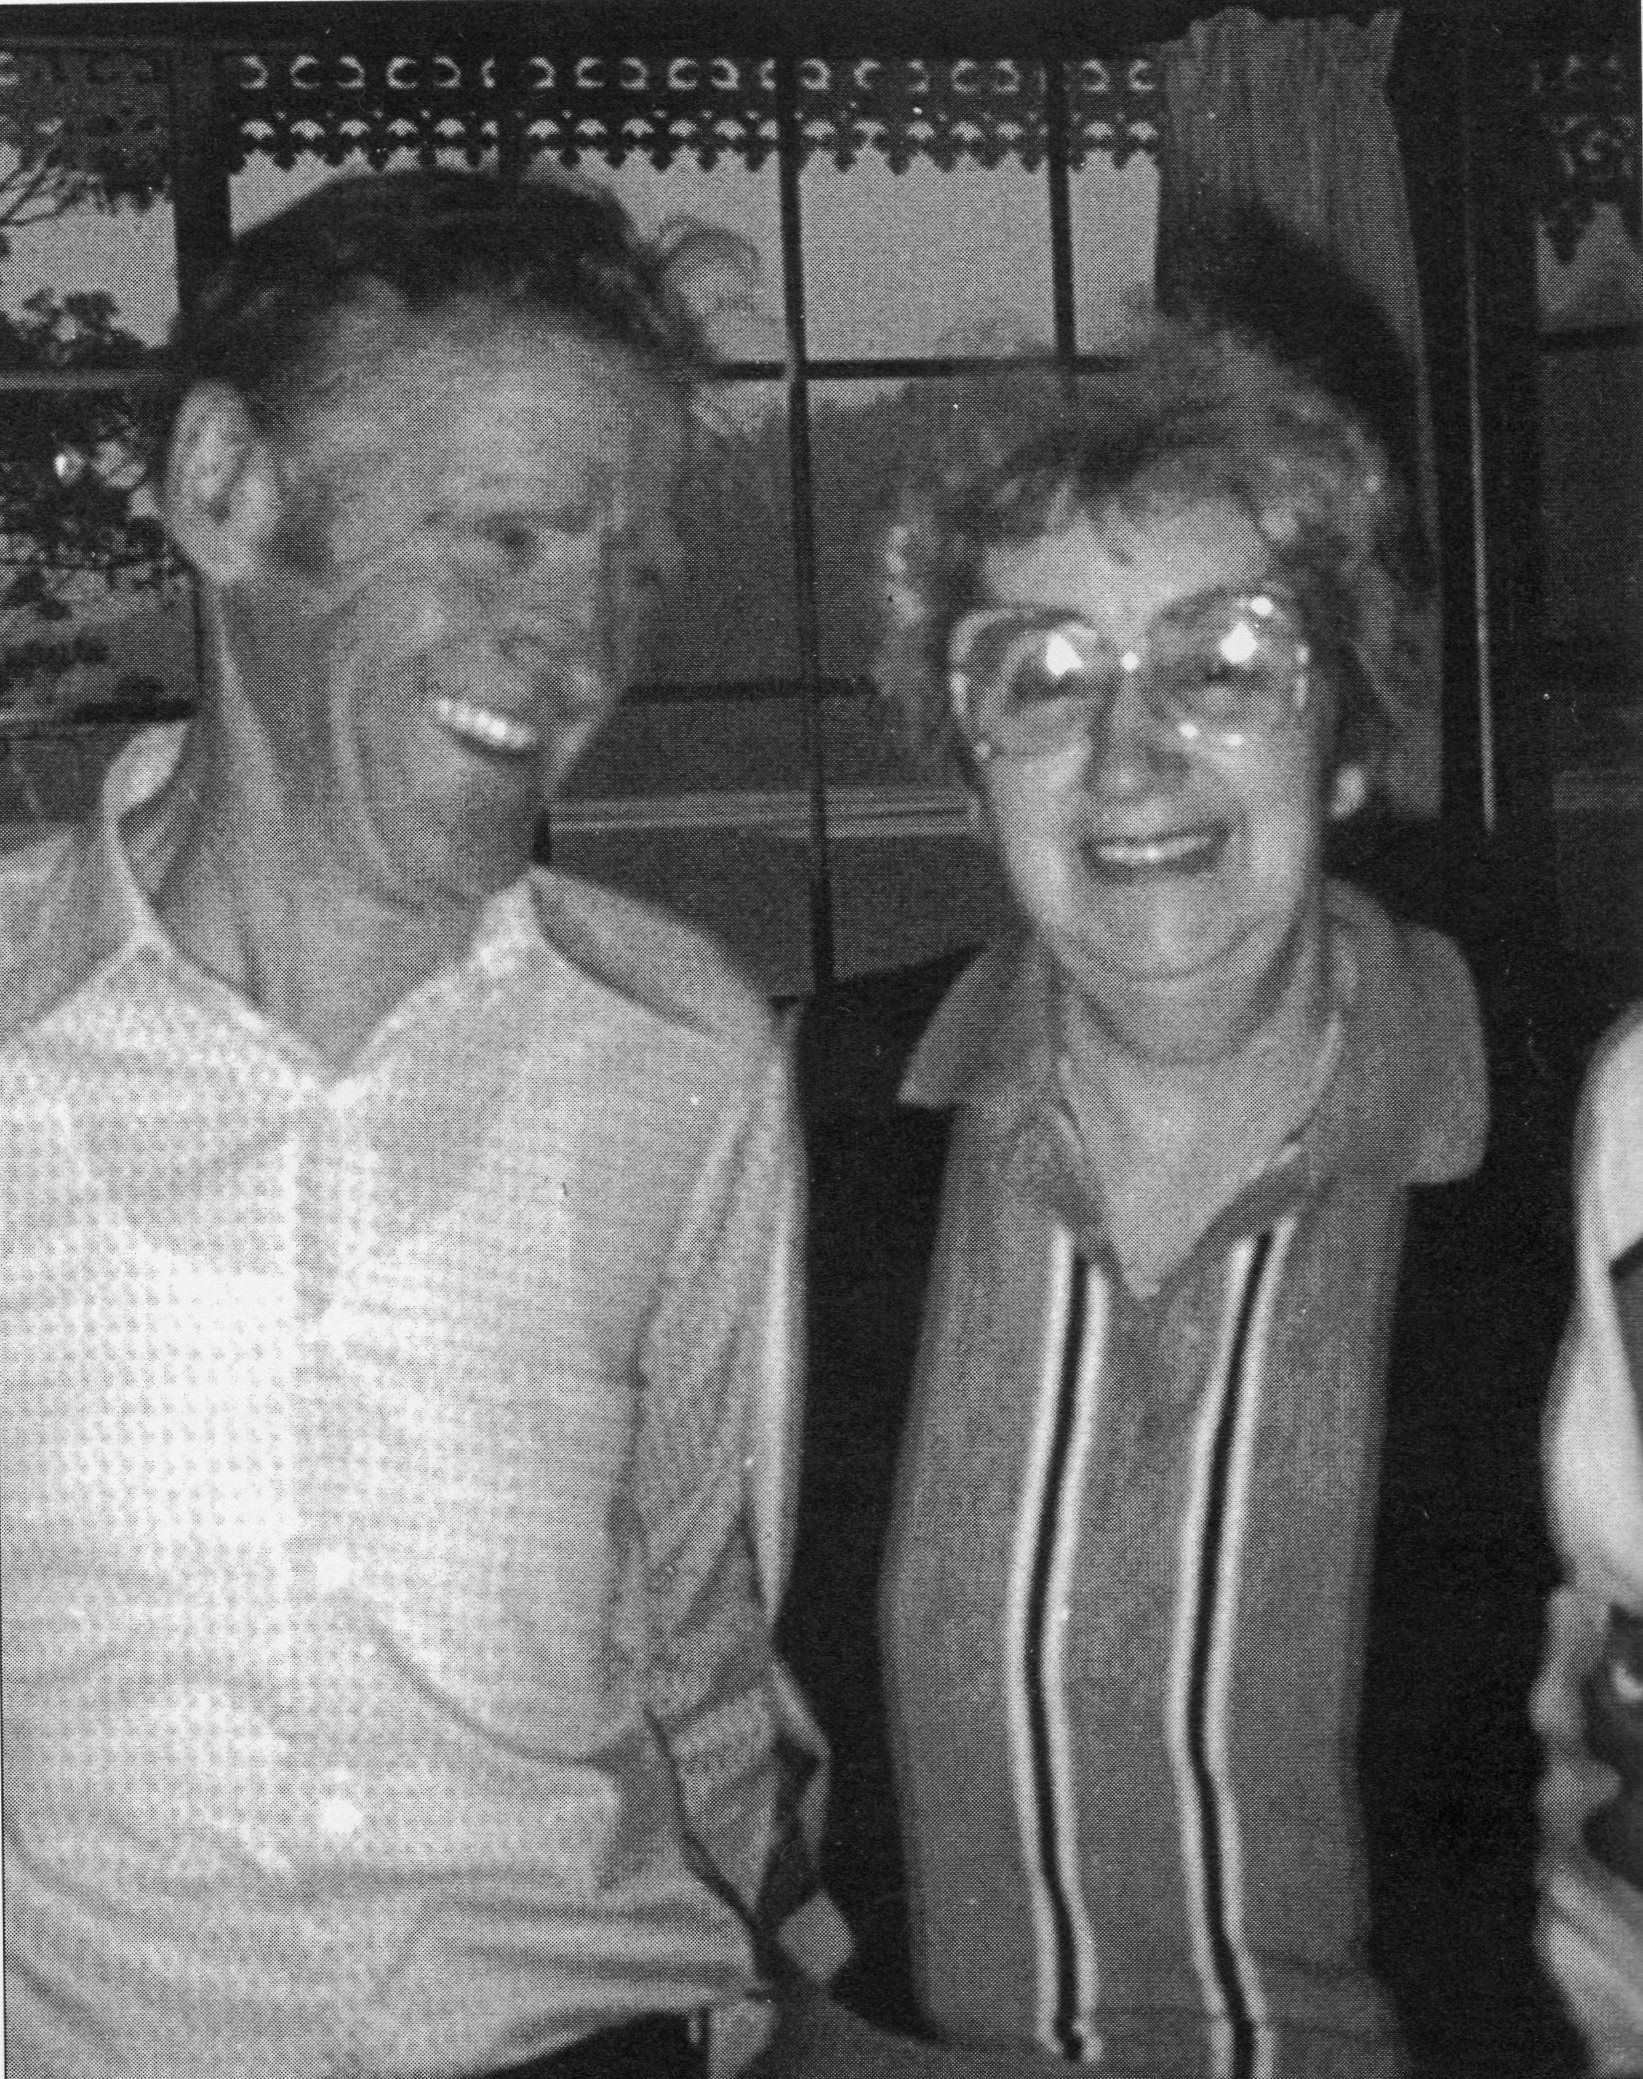 David and Noeline Martin in an undated photo